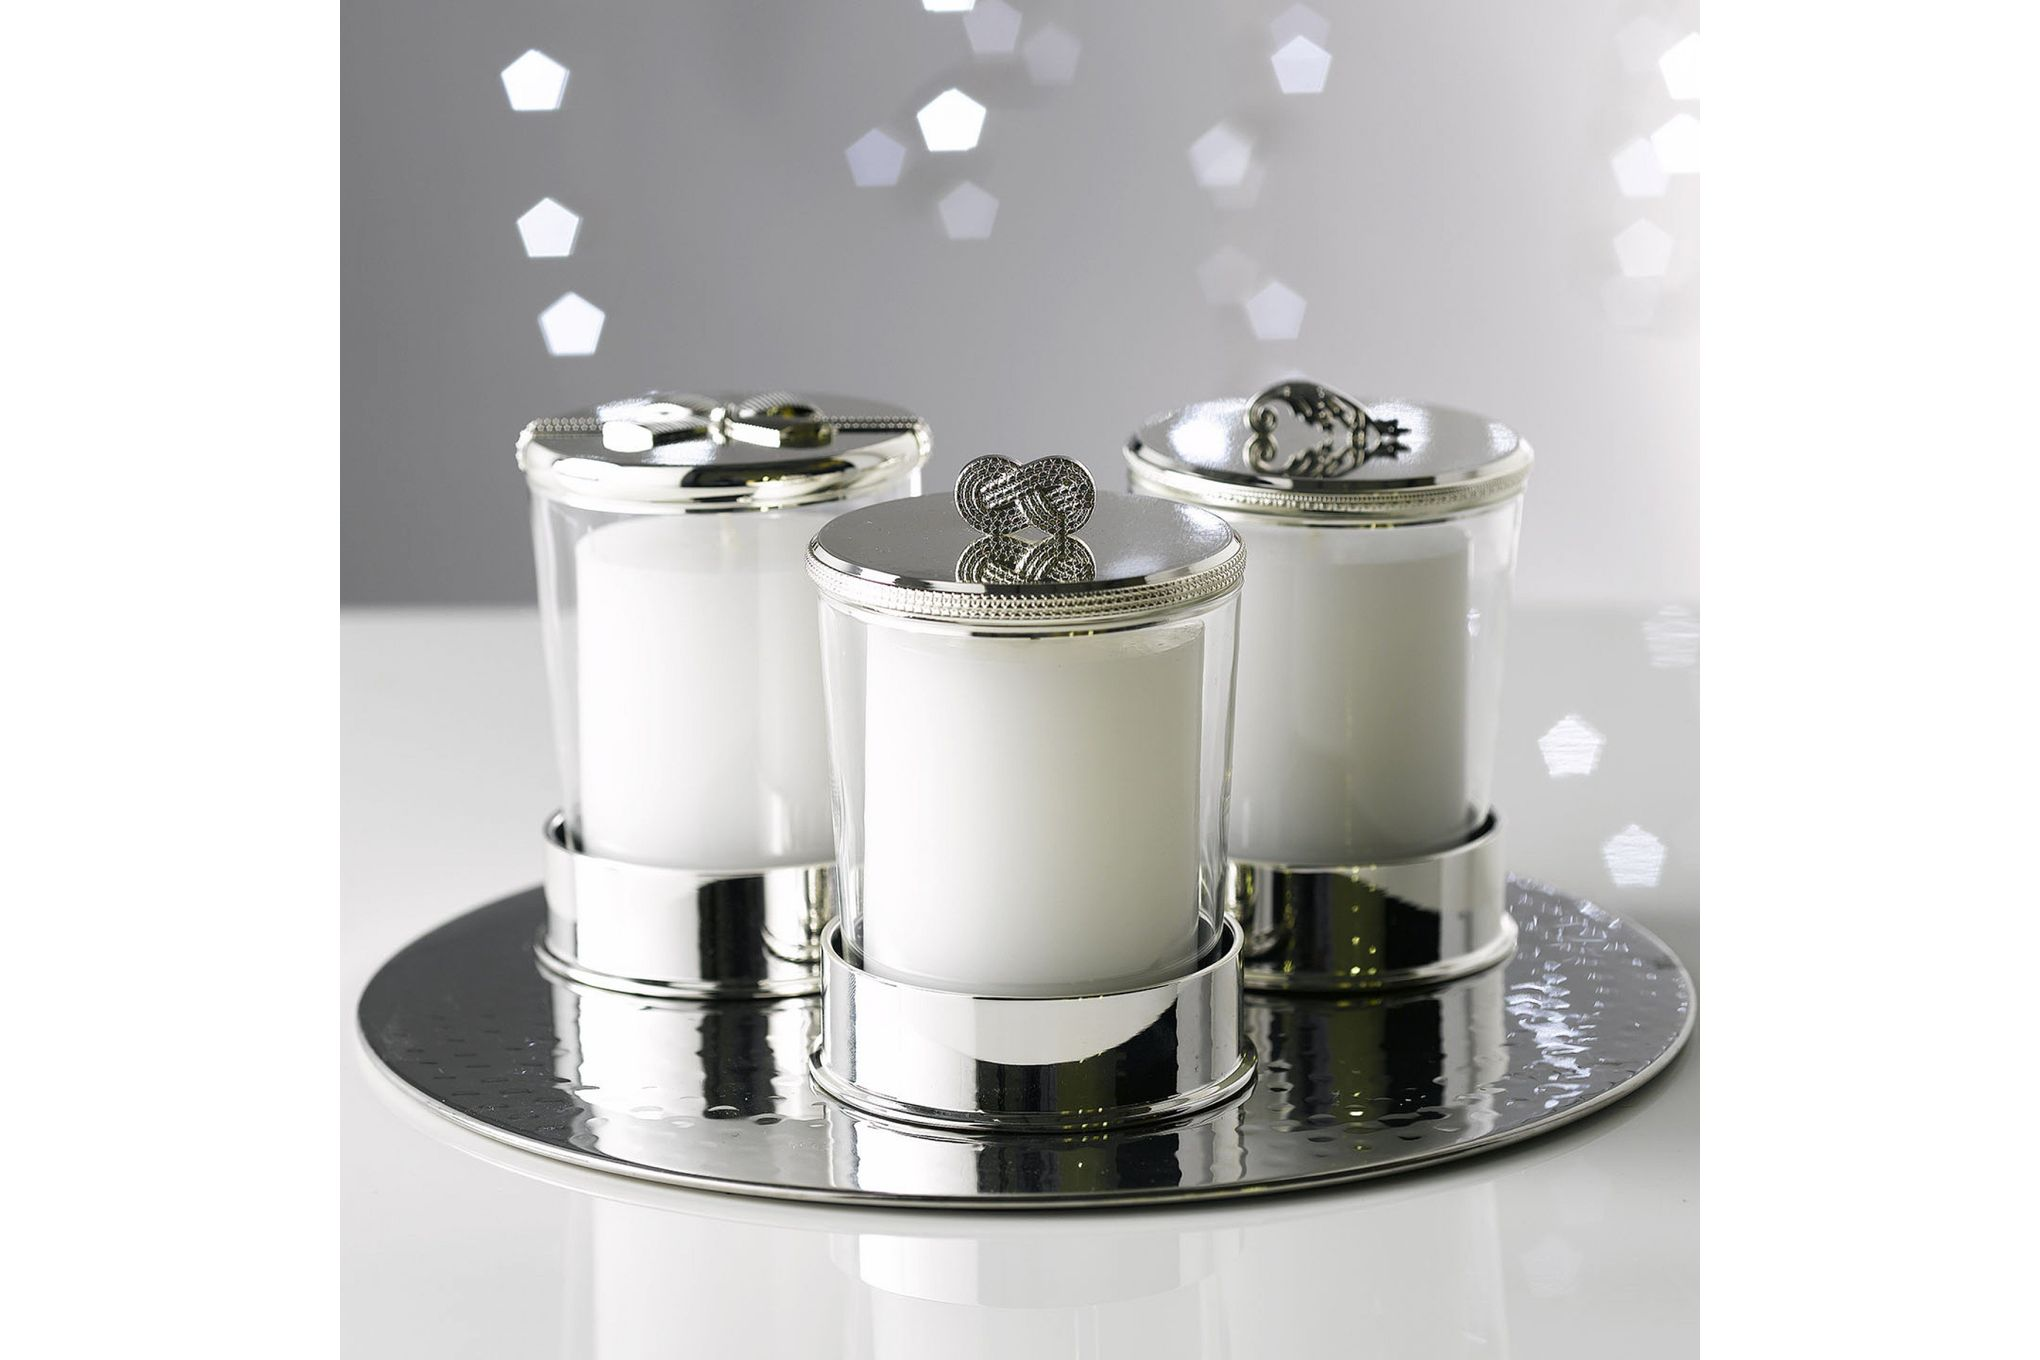 Vera Wang for Wedgwood Gifts & Accessories Covered Candle On Base Infinity thumb 3